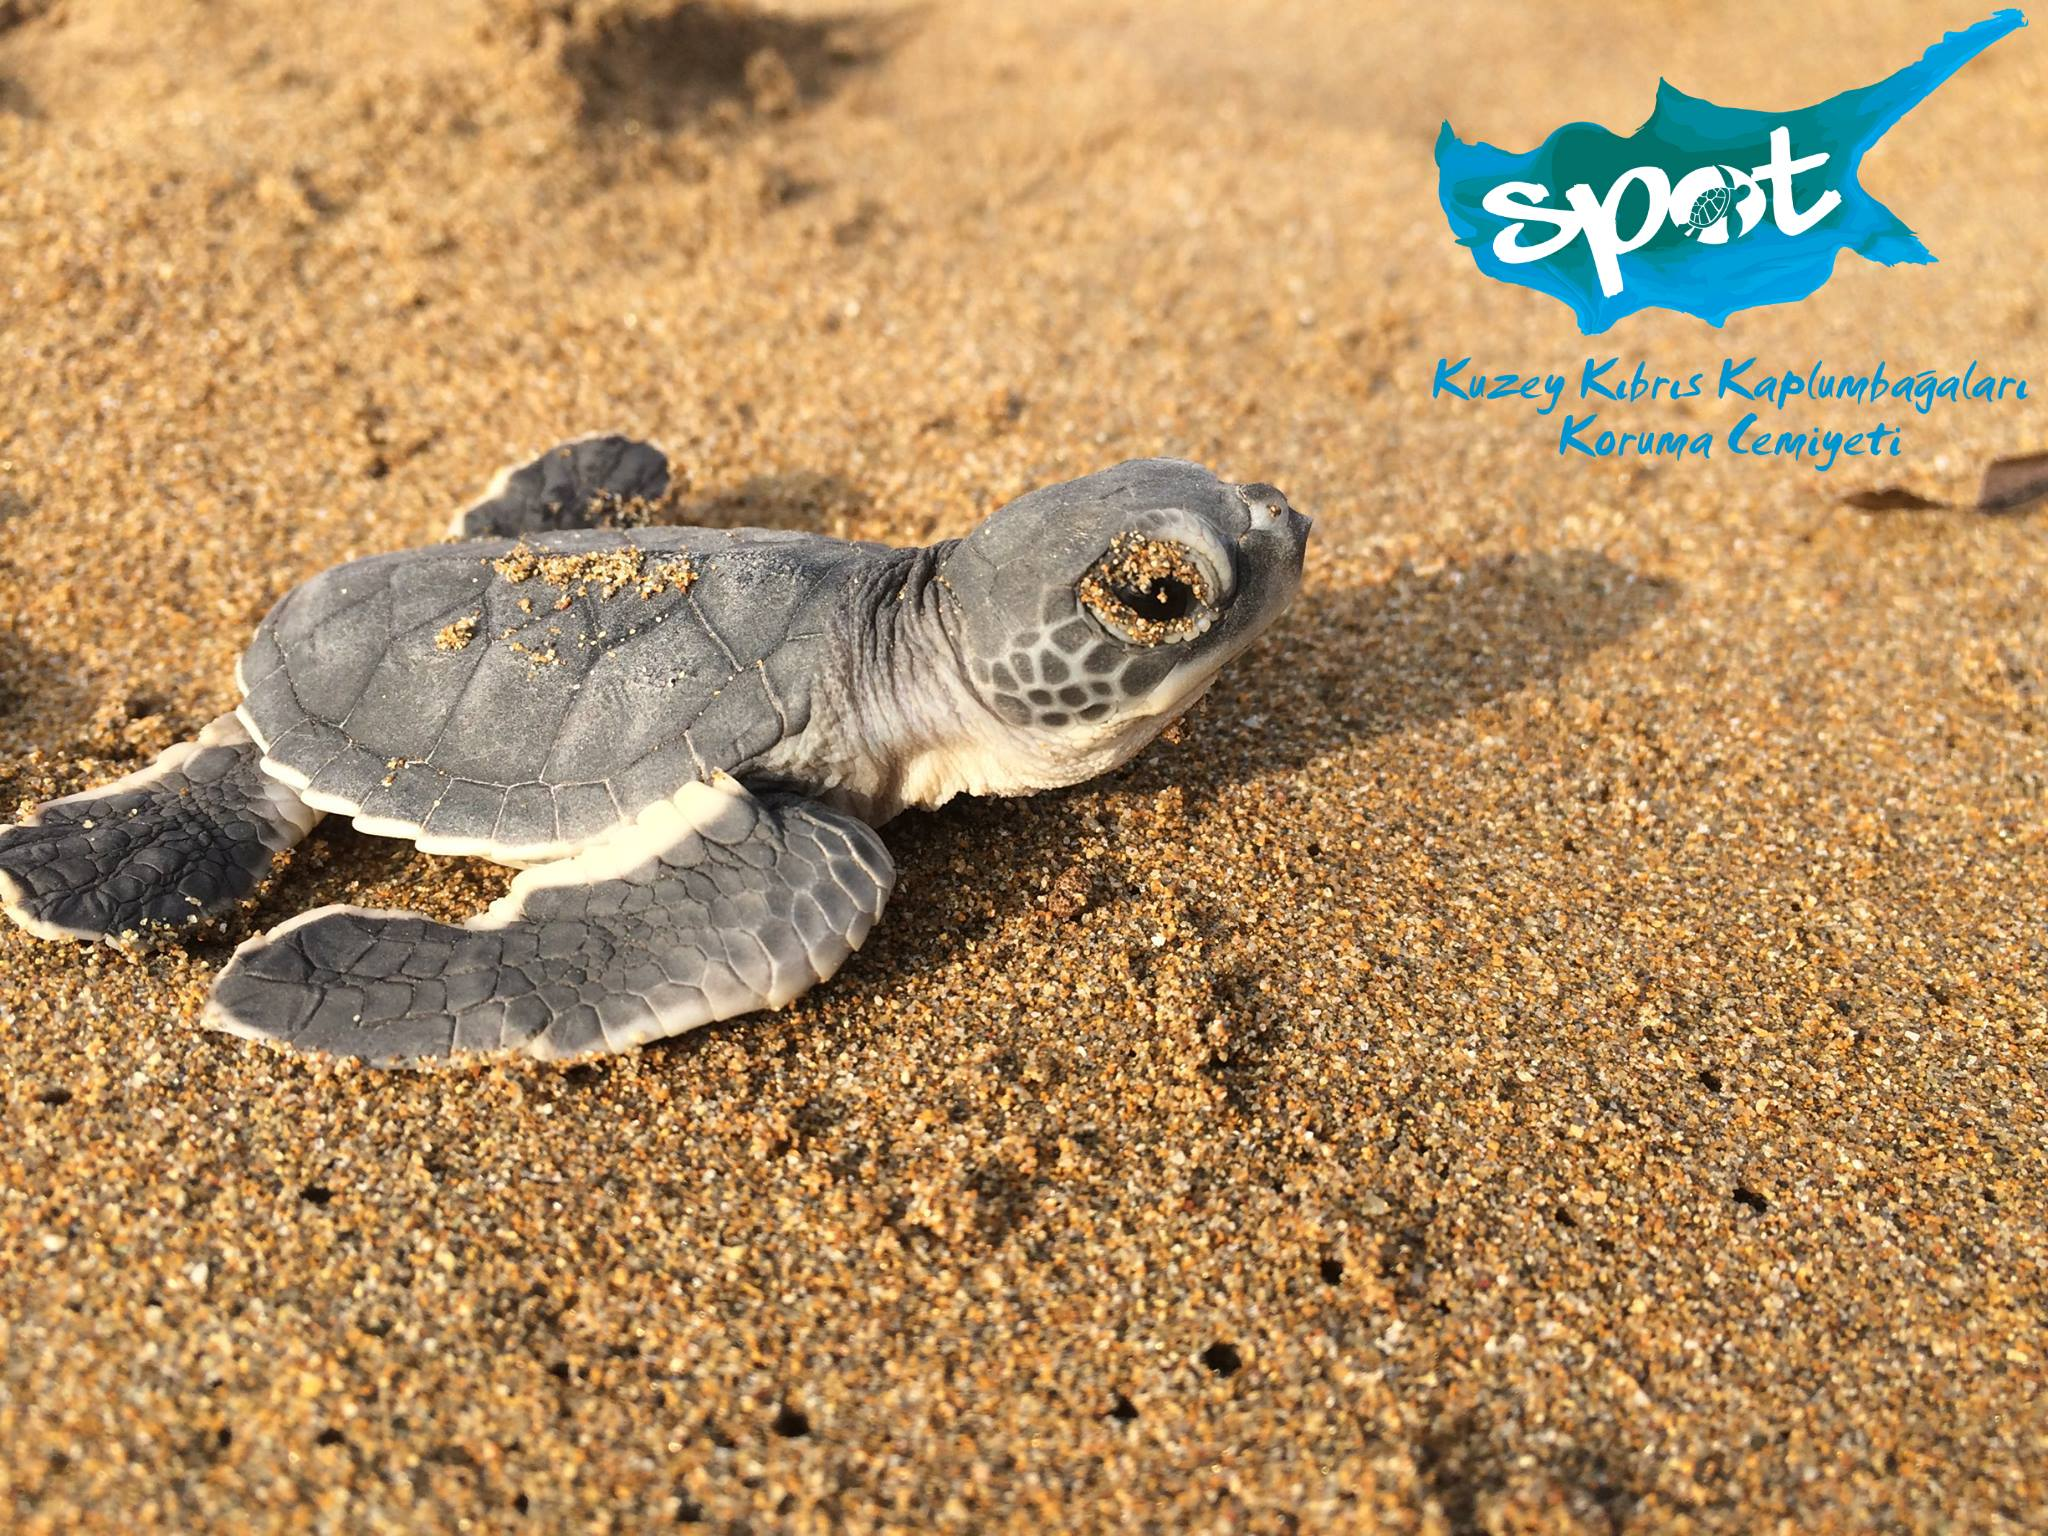 Baby Turtle - Society for the Protection of Turtles (SPOT)